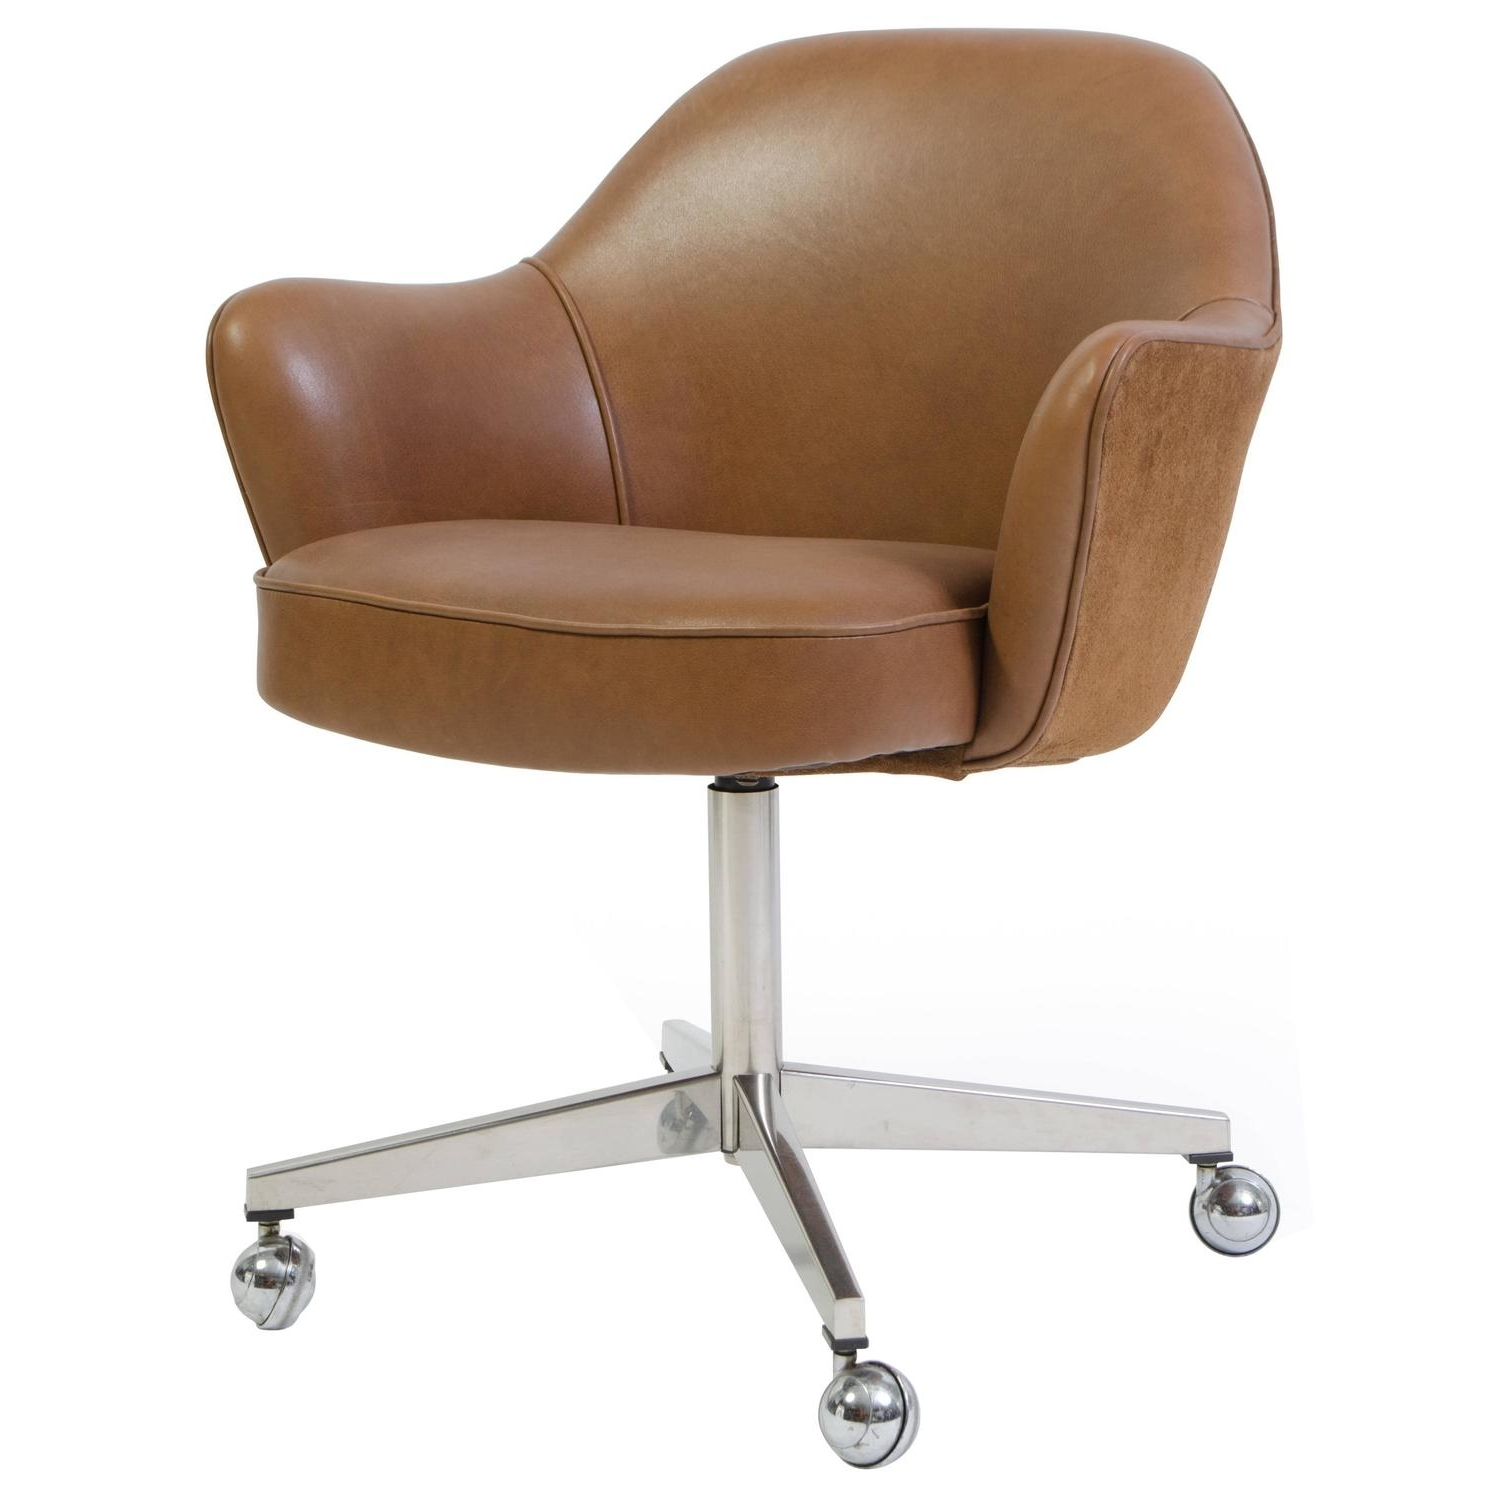 Verona Executive Leather Office Chairs With Regard To Favorite Chair : High Back Executive Leather Office Chair Verona Brown (View 3 of 20)